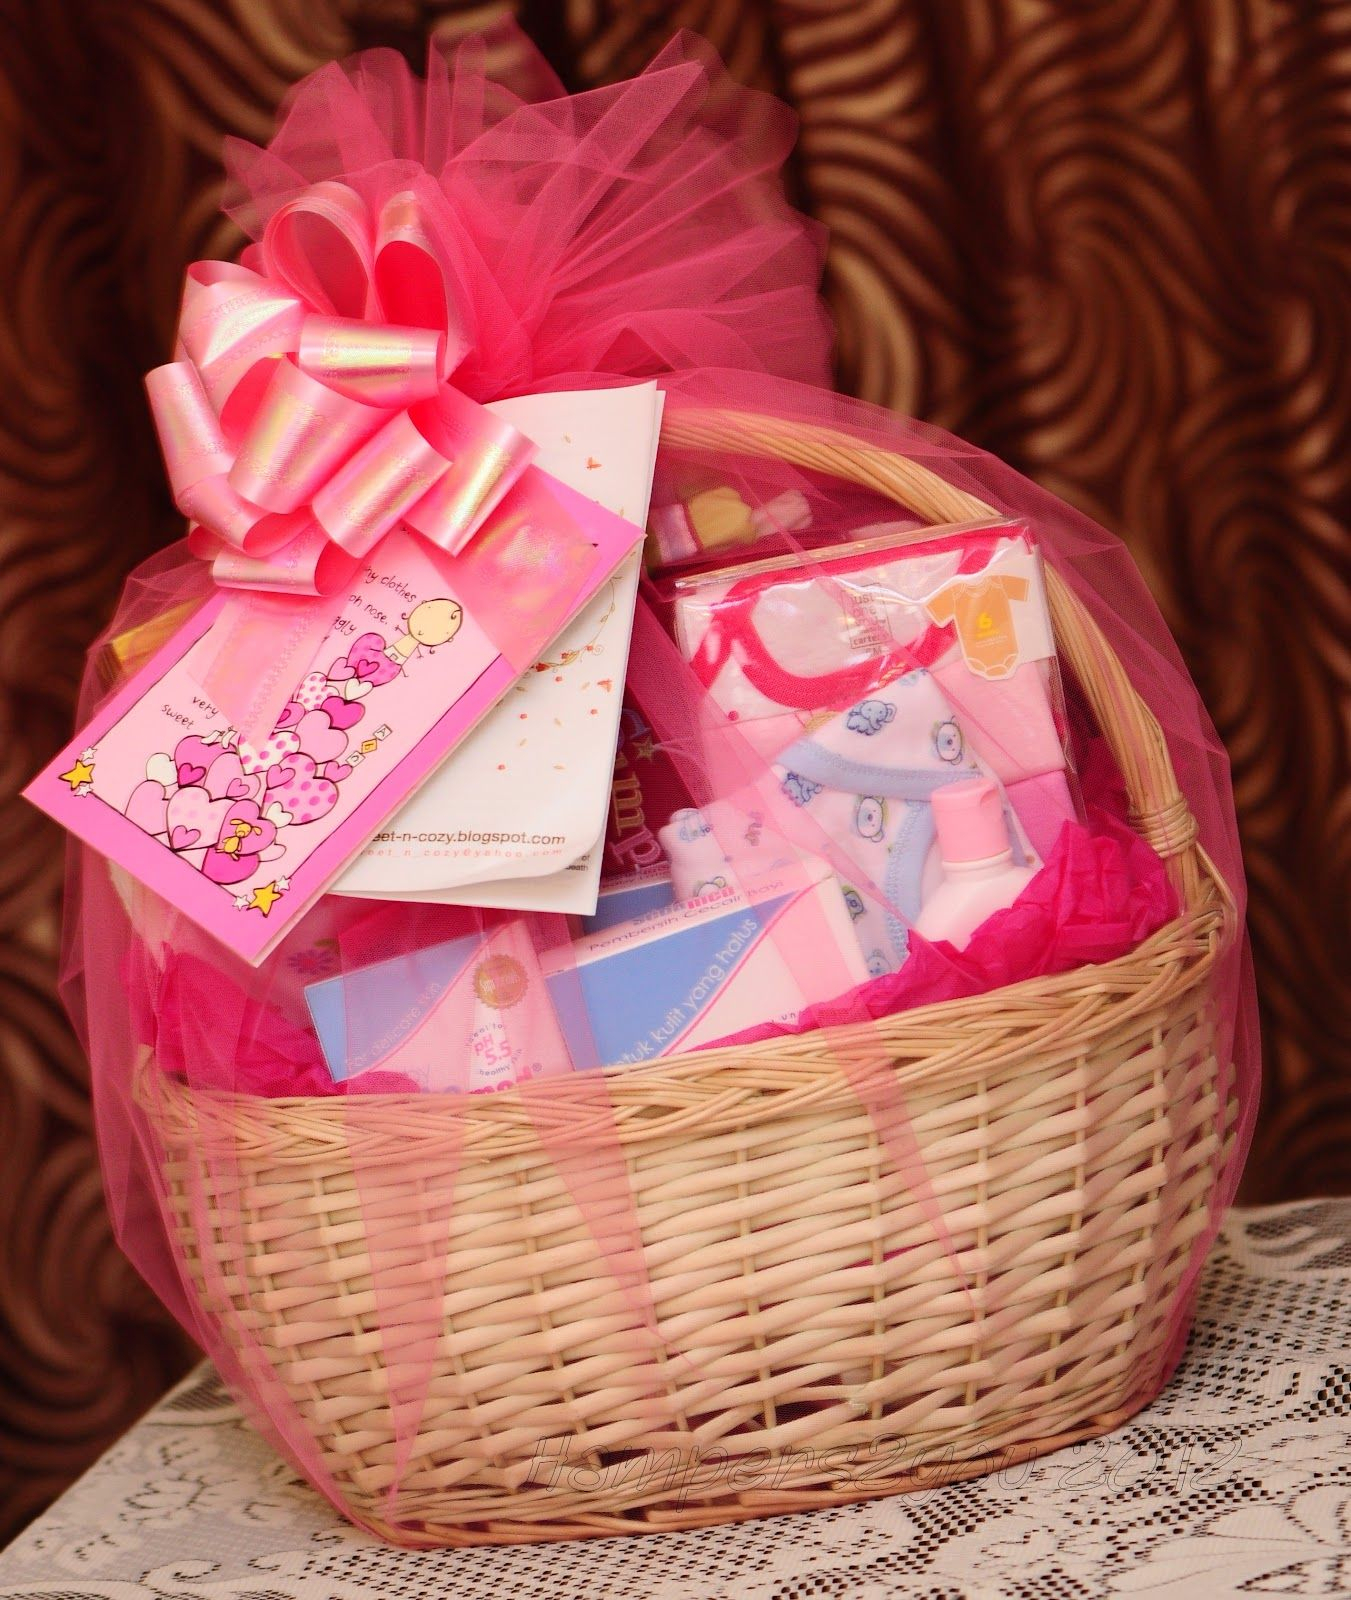 10 Unique New Born Baby Gift Ideas baby gift baskets hampers2you baby gift baskets for newborn girl 1